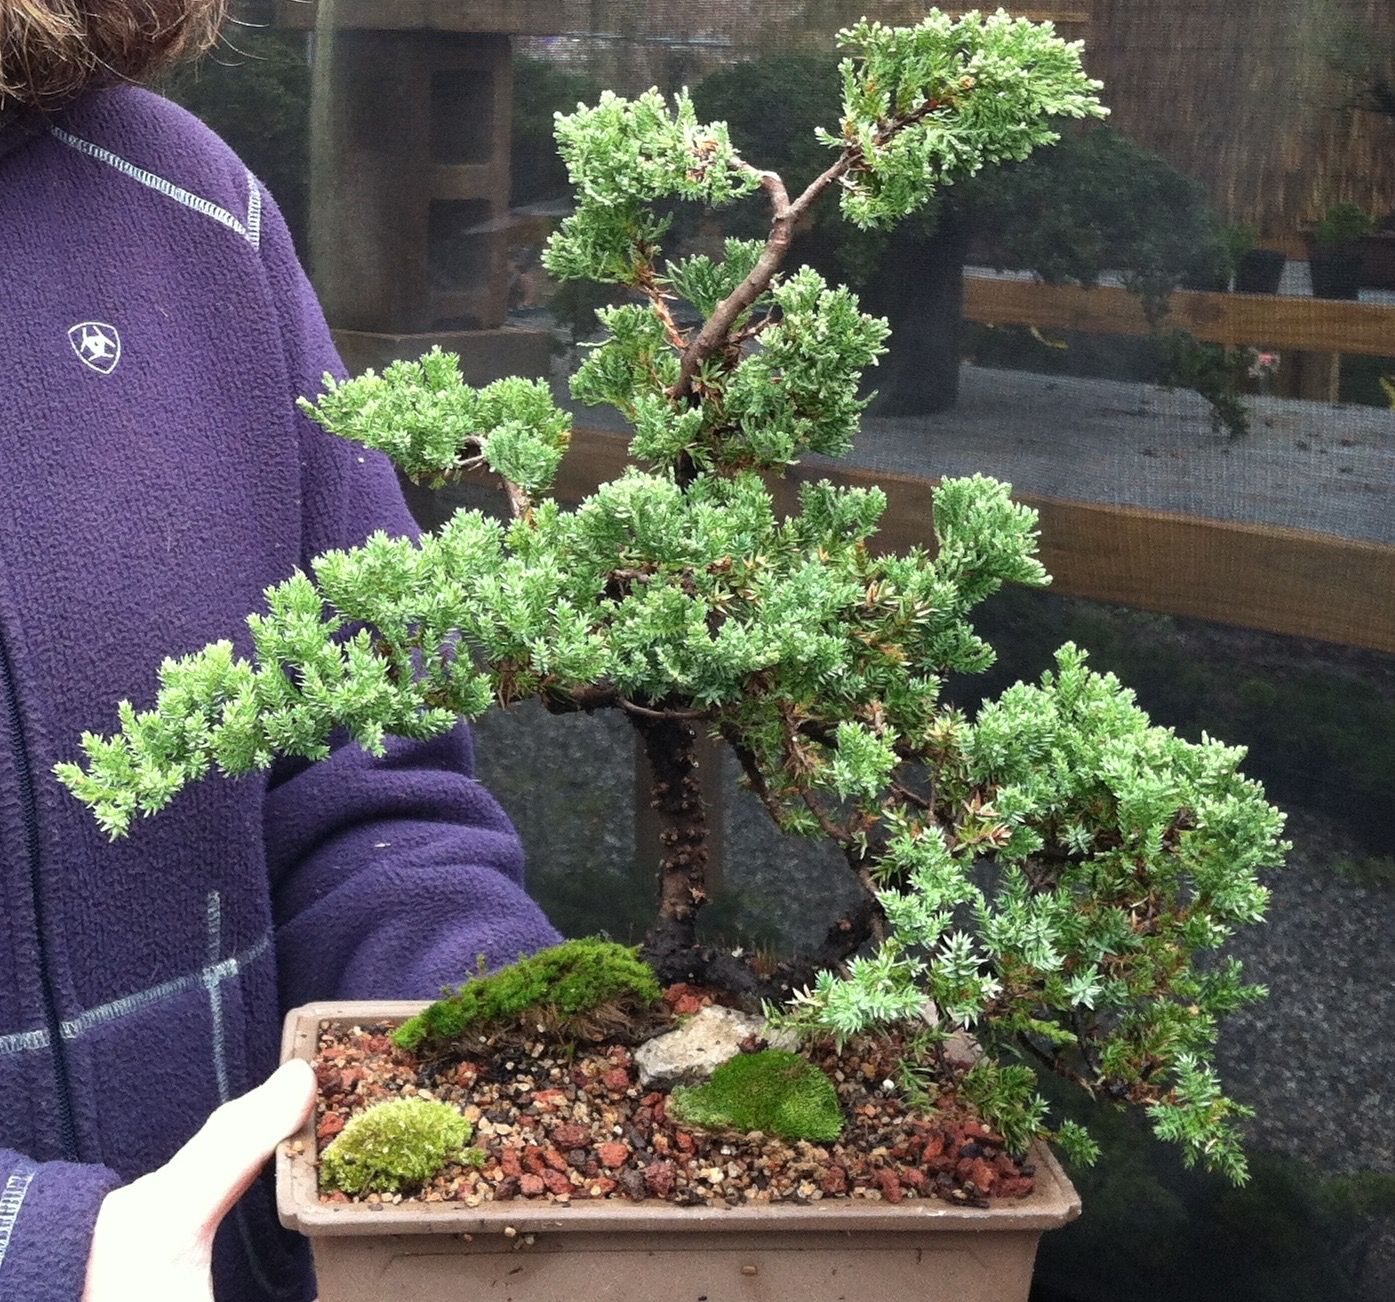 How to bonsai trees for beginners - How To Bonsai Trees For Beginners 45